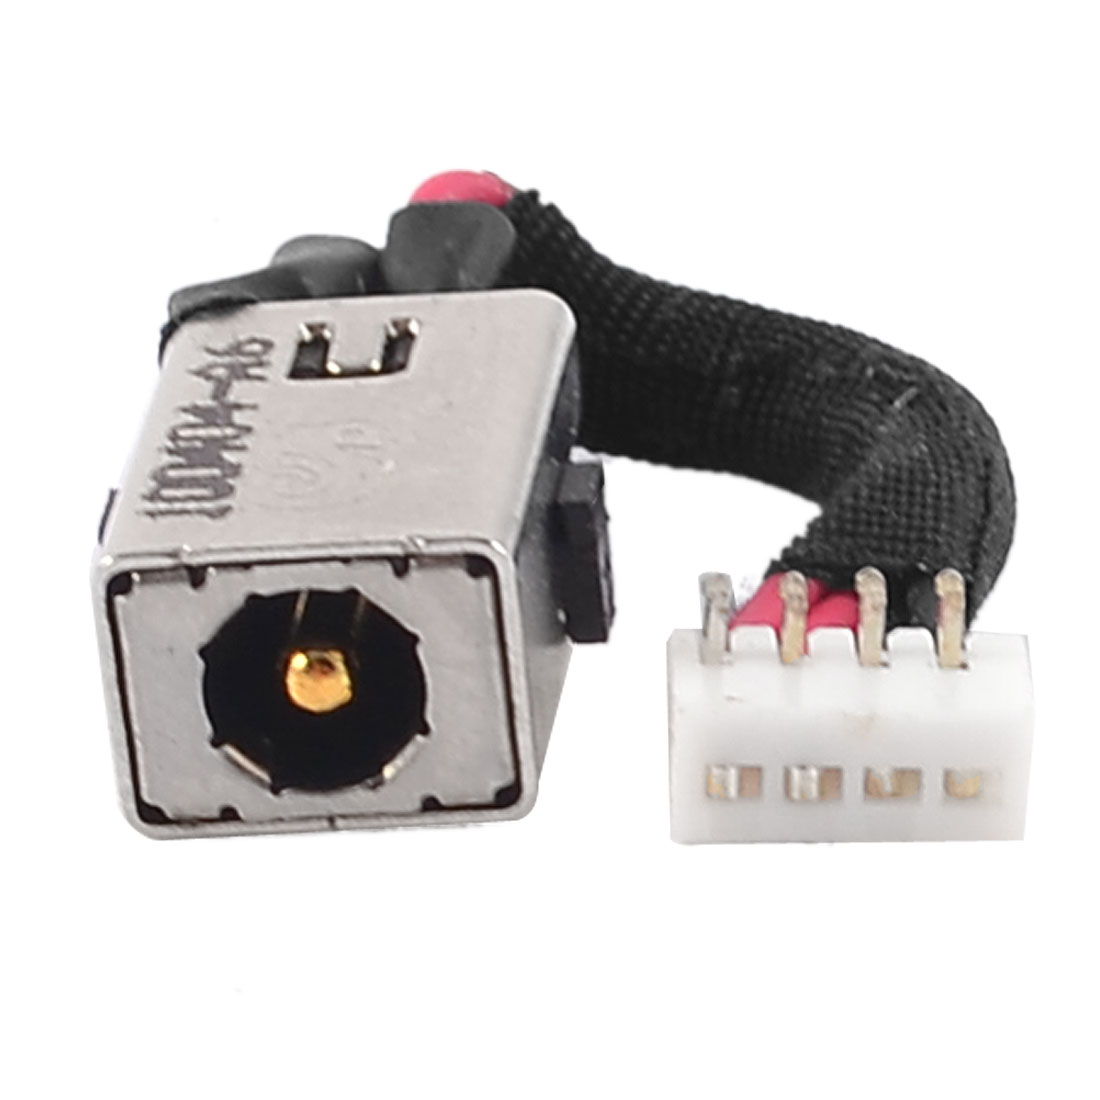 PJ188 DC Jack Power Socket w 4 Pins Cable for Laptops